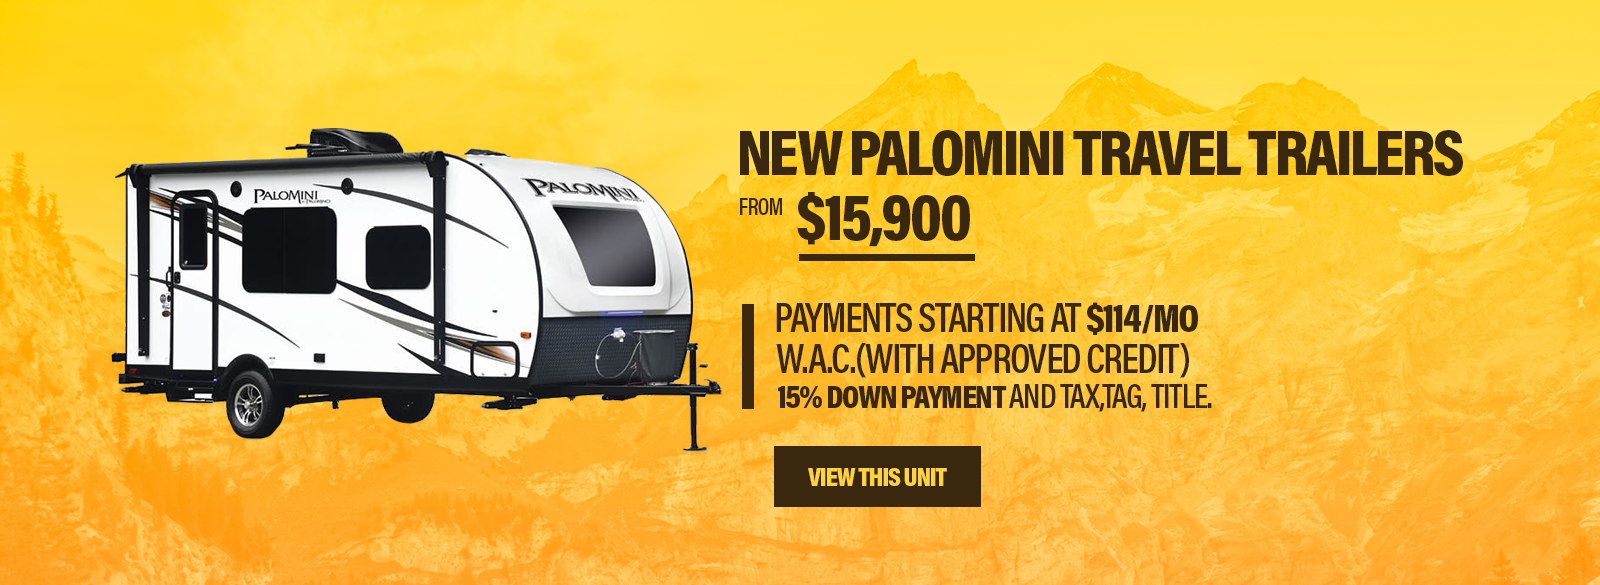 TriAmRV_Palomini_HomepageBanner_April19.png